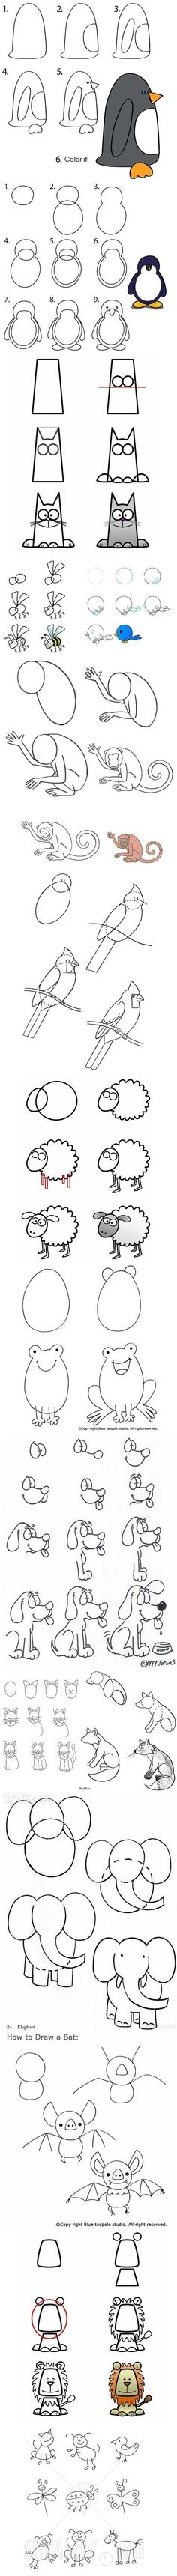 How-To: Draw Cute Animals